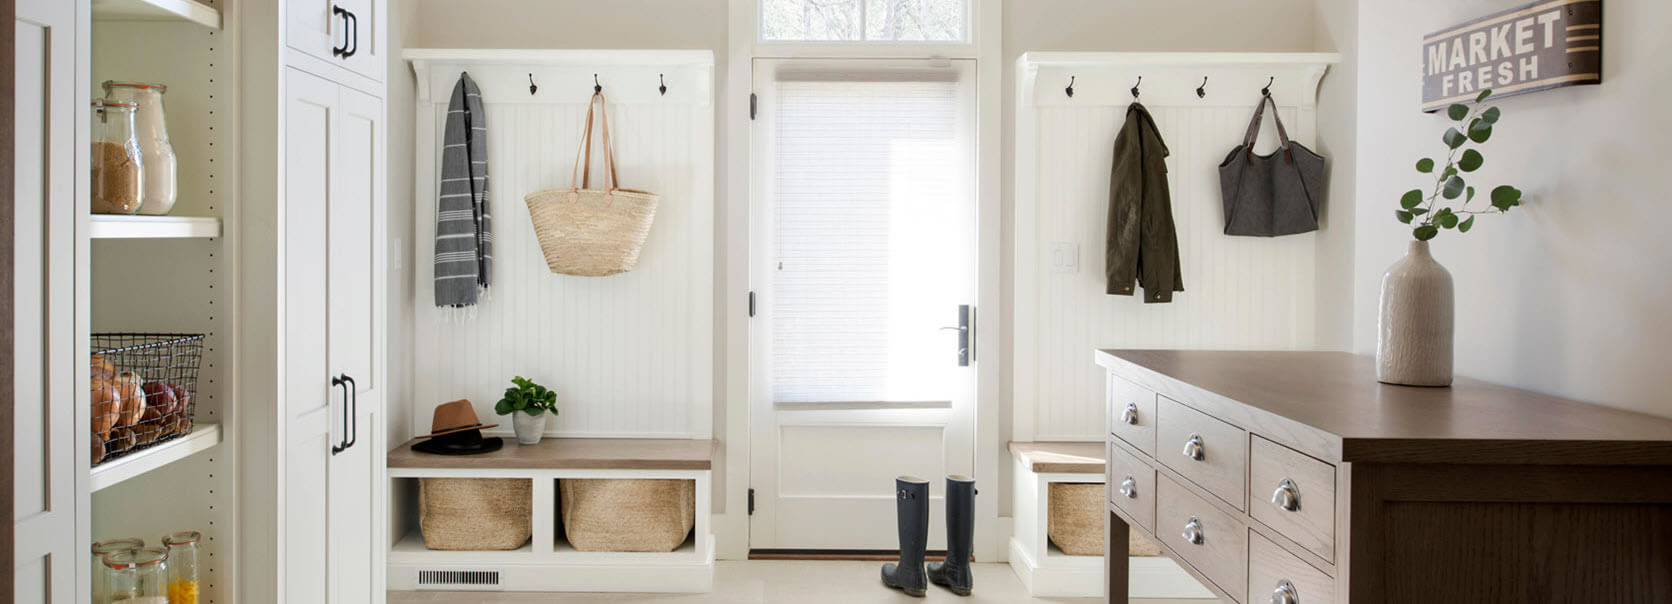 mud-room-with-table-shelves-hangers